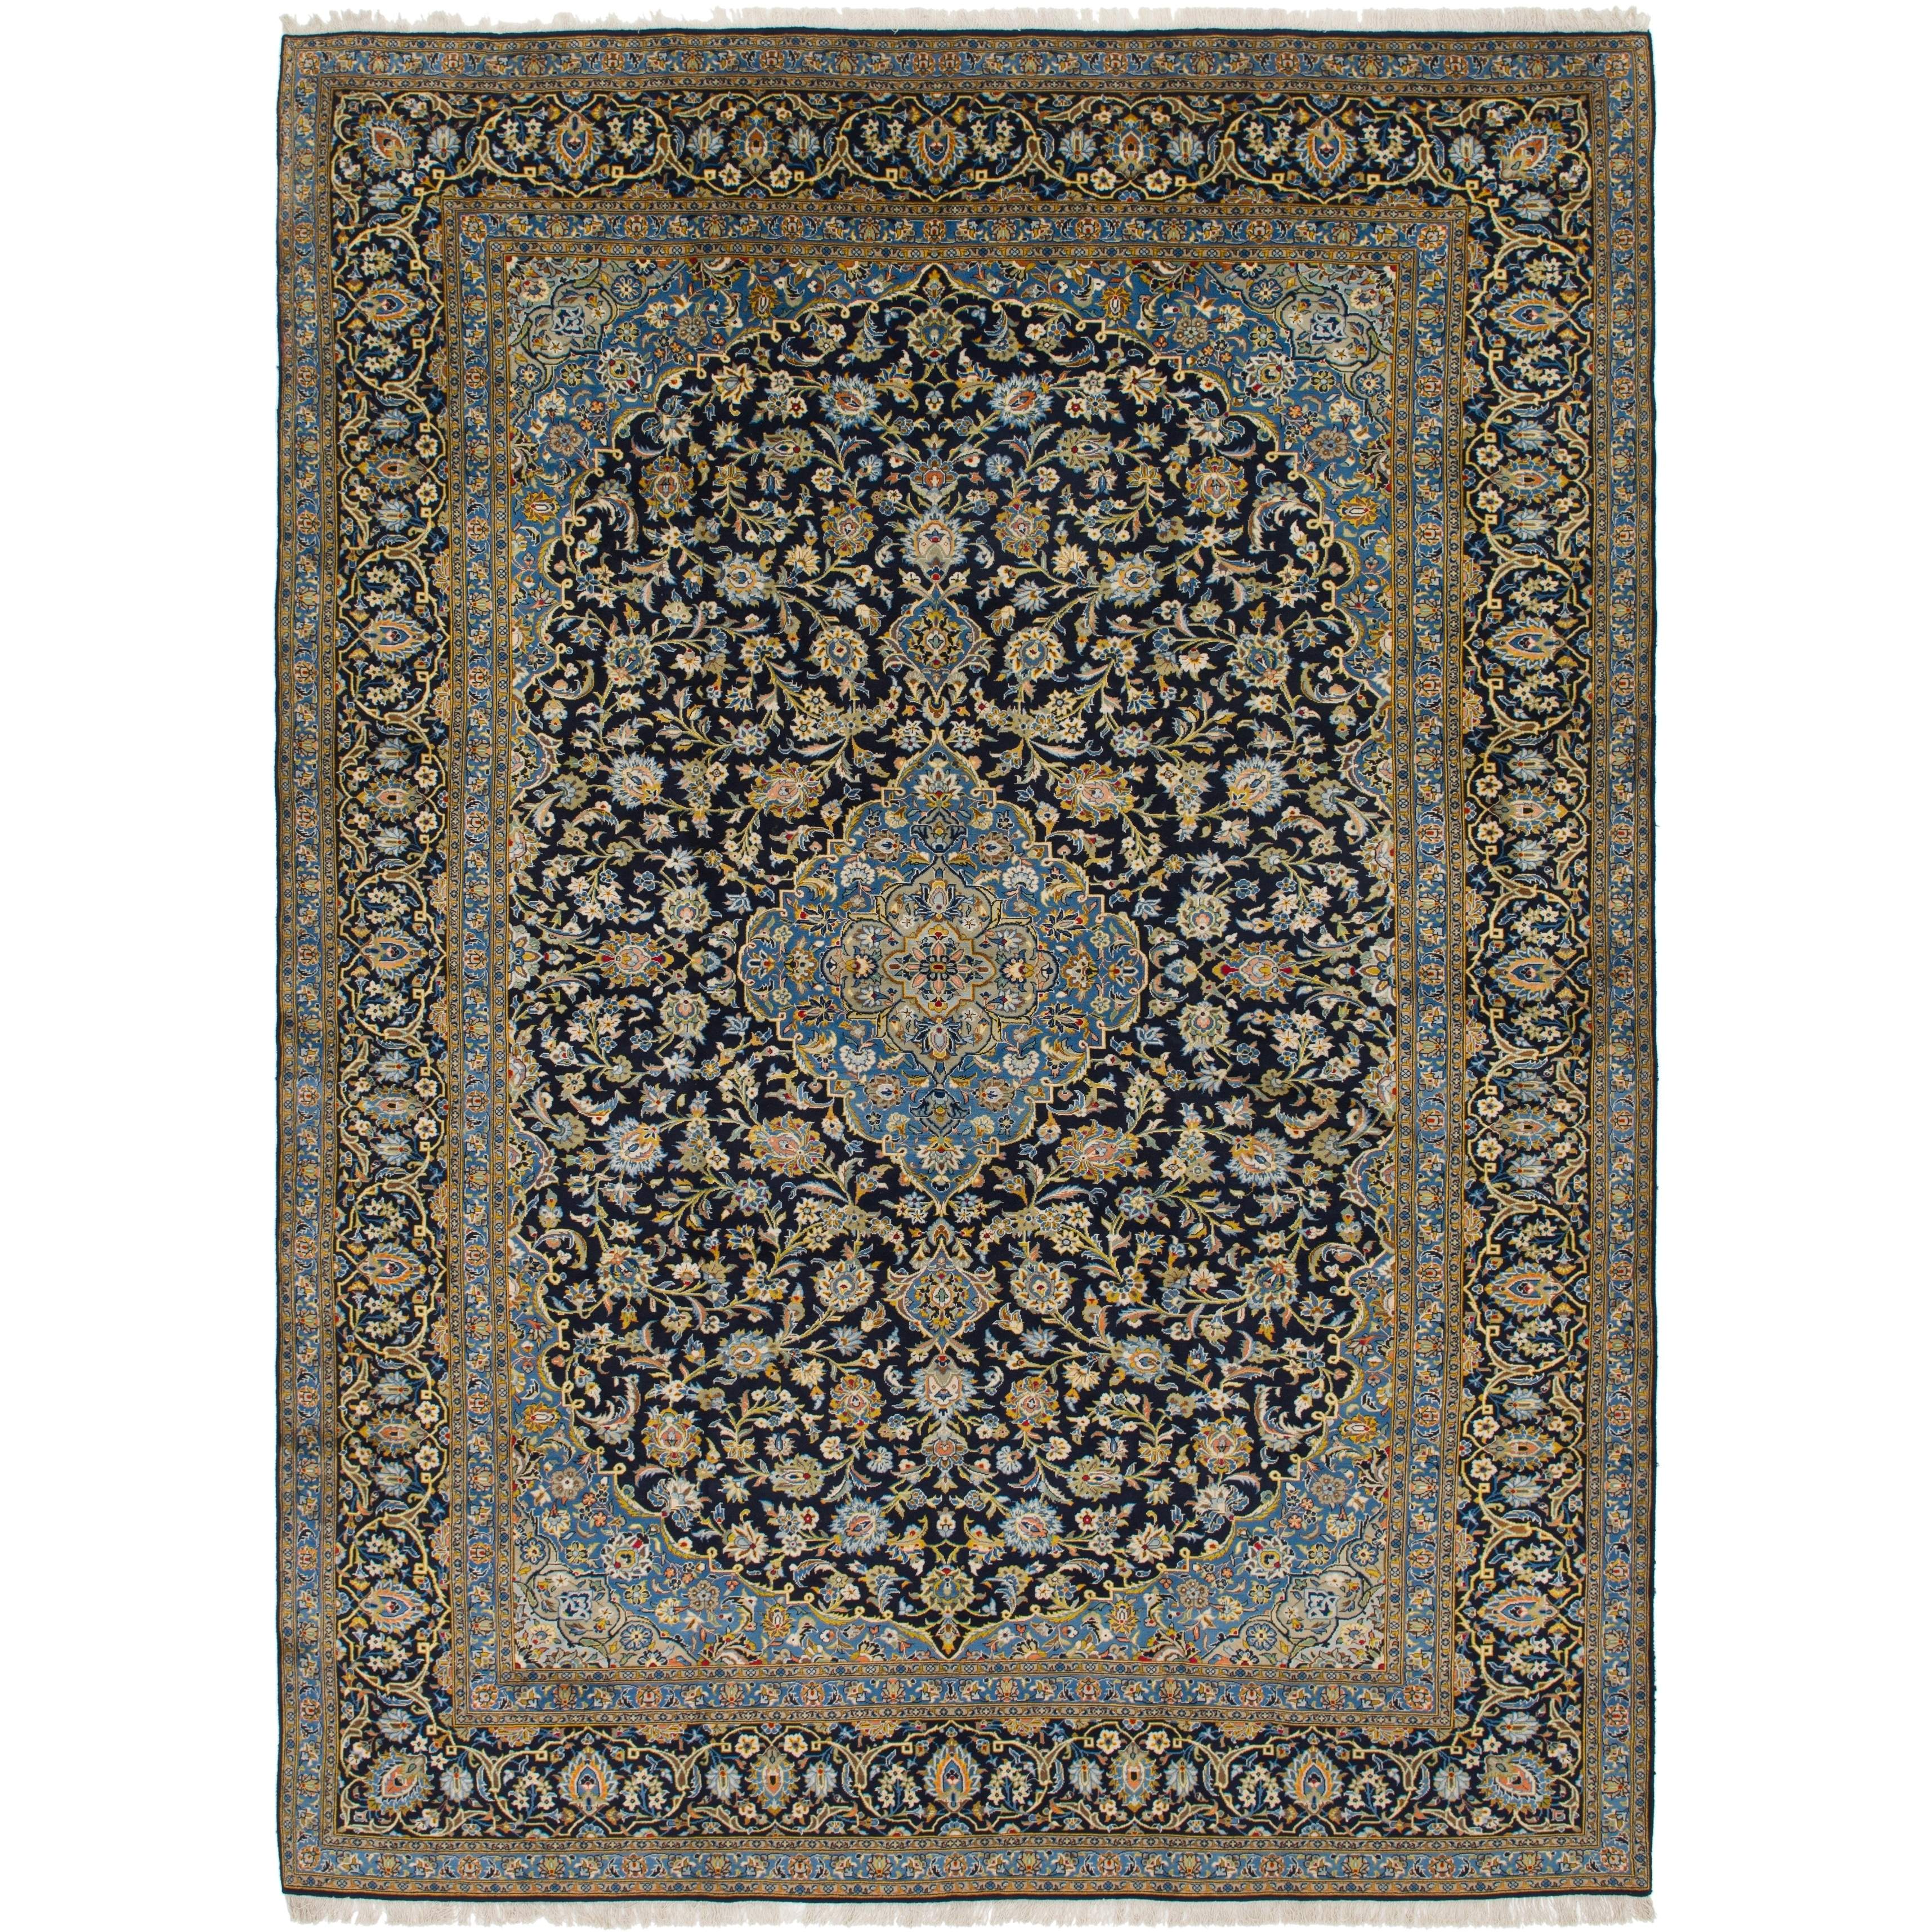 Hand Knotted Kashan Wool Area Rug - 10 x 13 5 (Navy blue - 10 x 13 5)